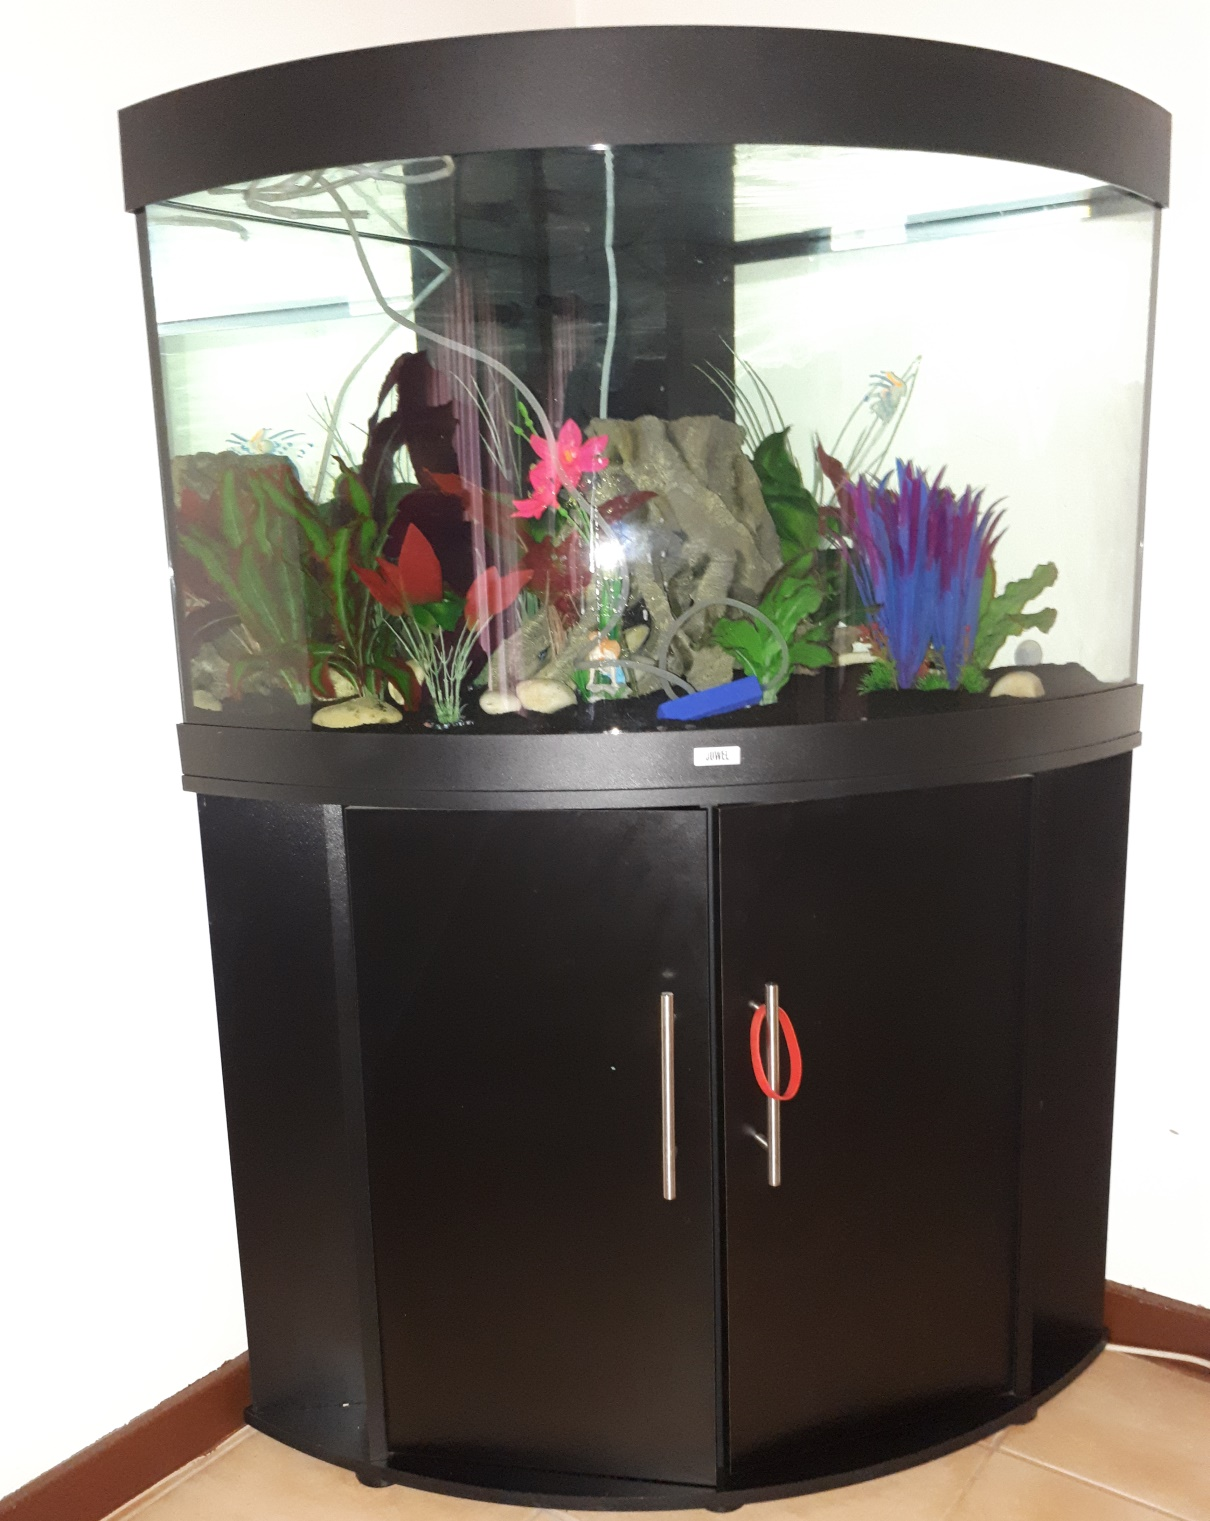 Jewel Trigon 190 Aquarium with Accessories